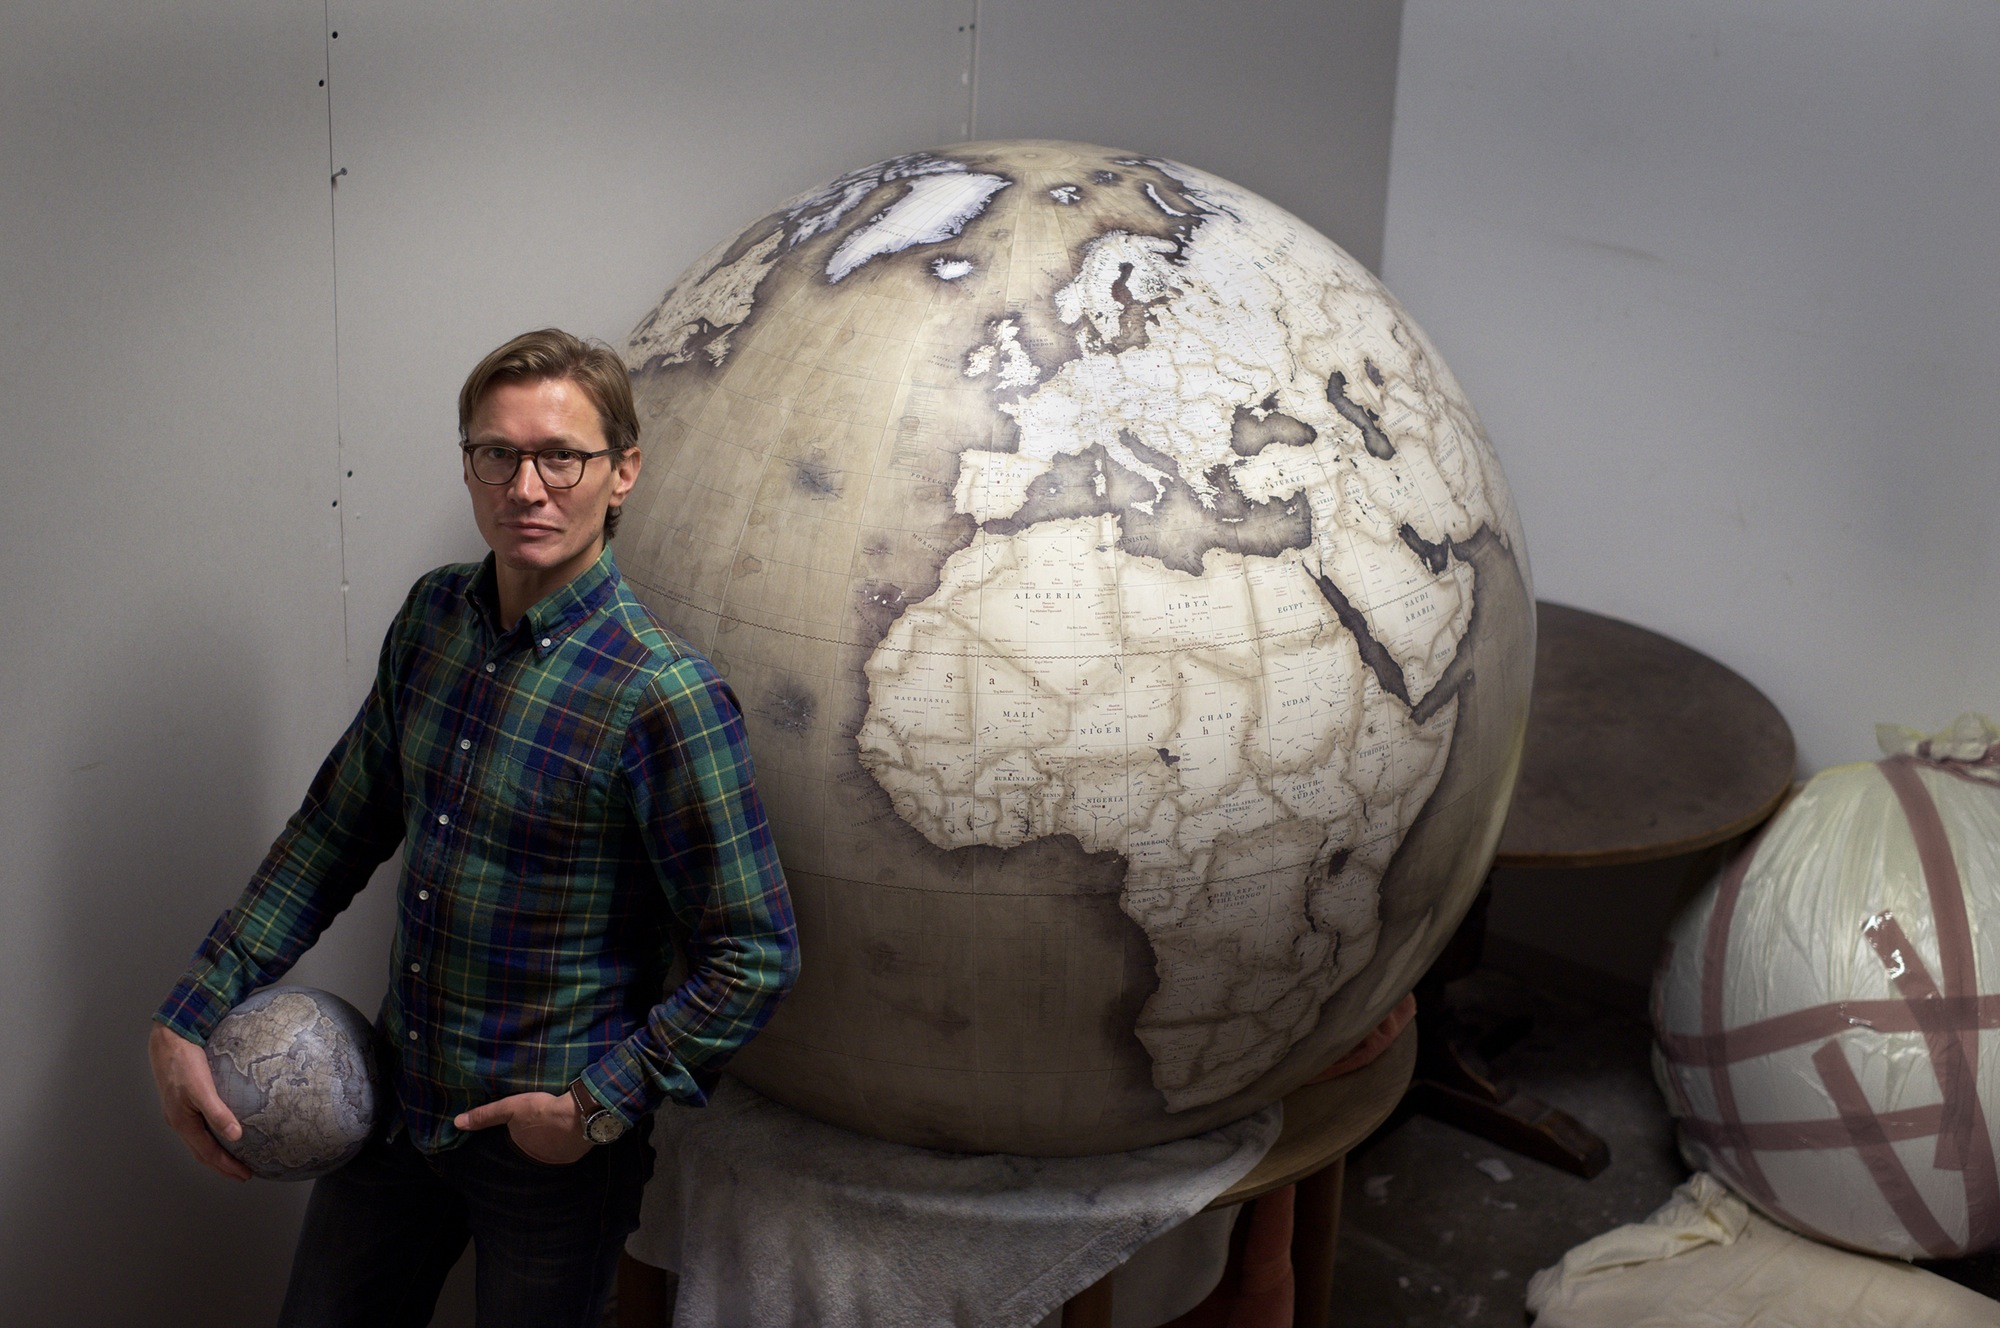 Bellerby and Company Globemakers